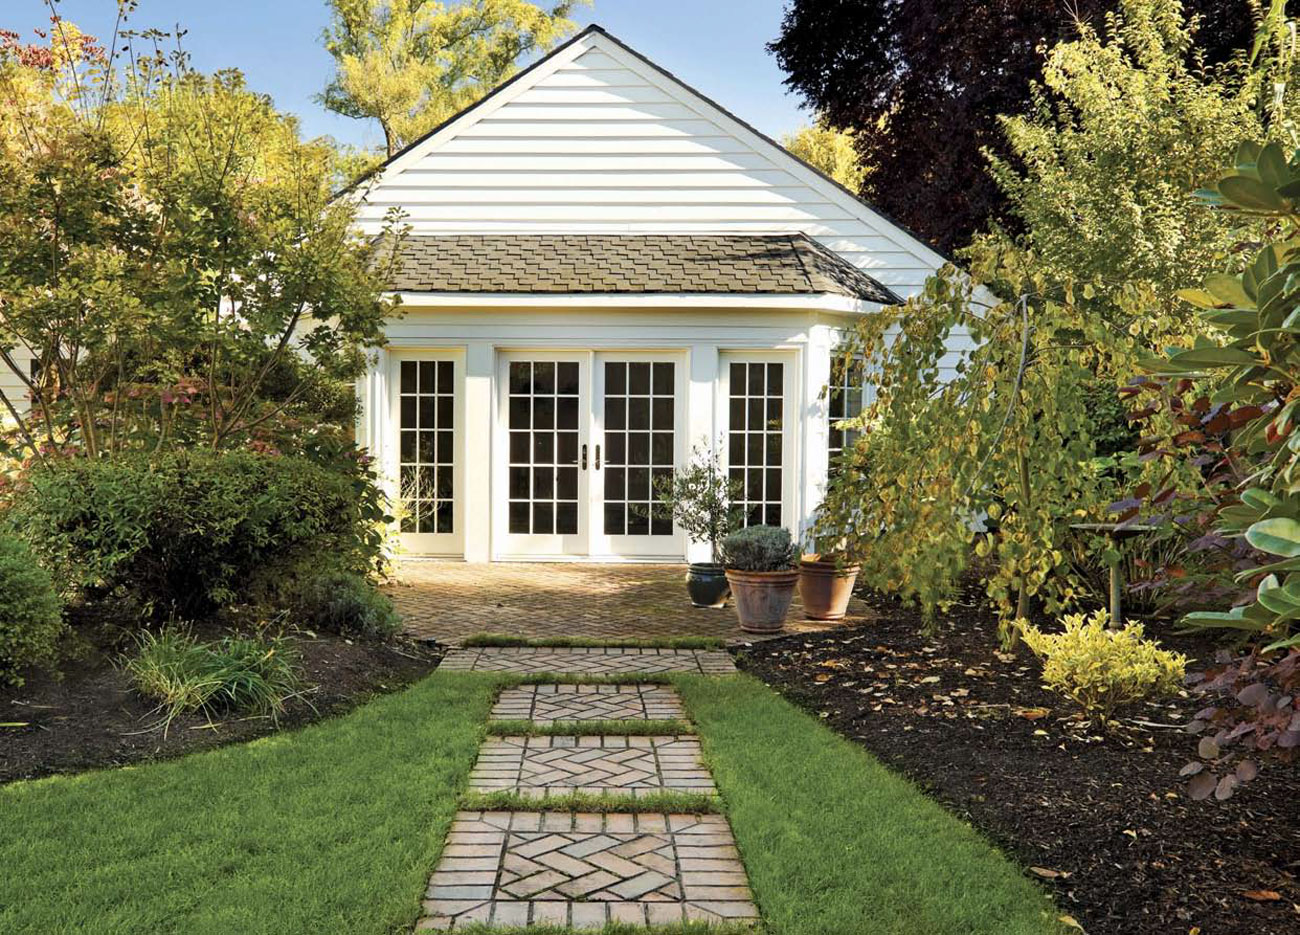 Custom brick pavers create a path through the garden toward a back house.